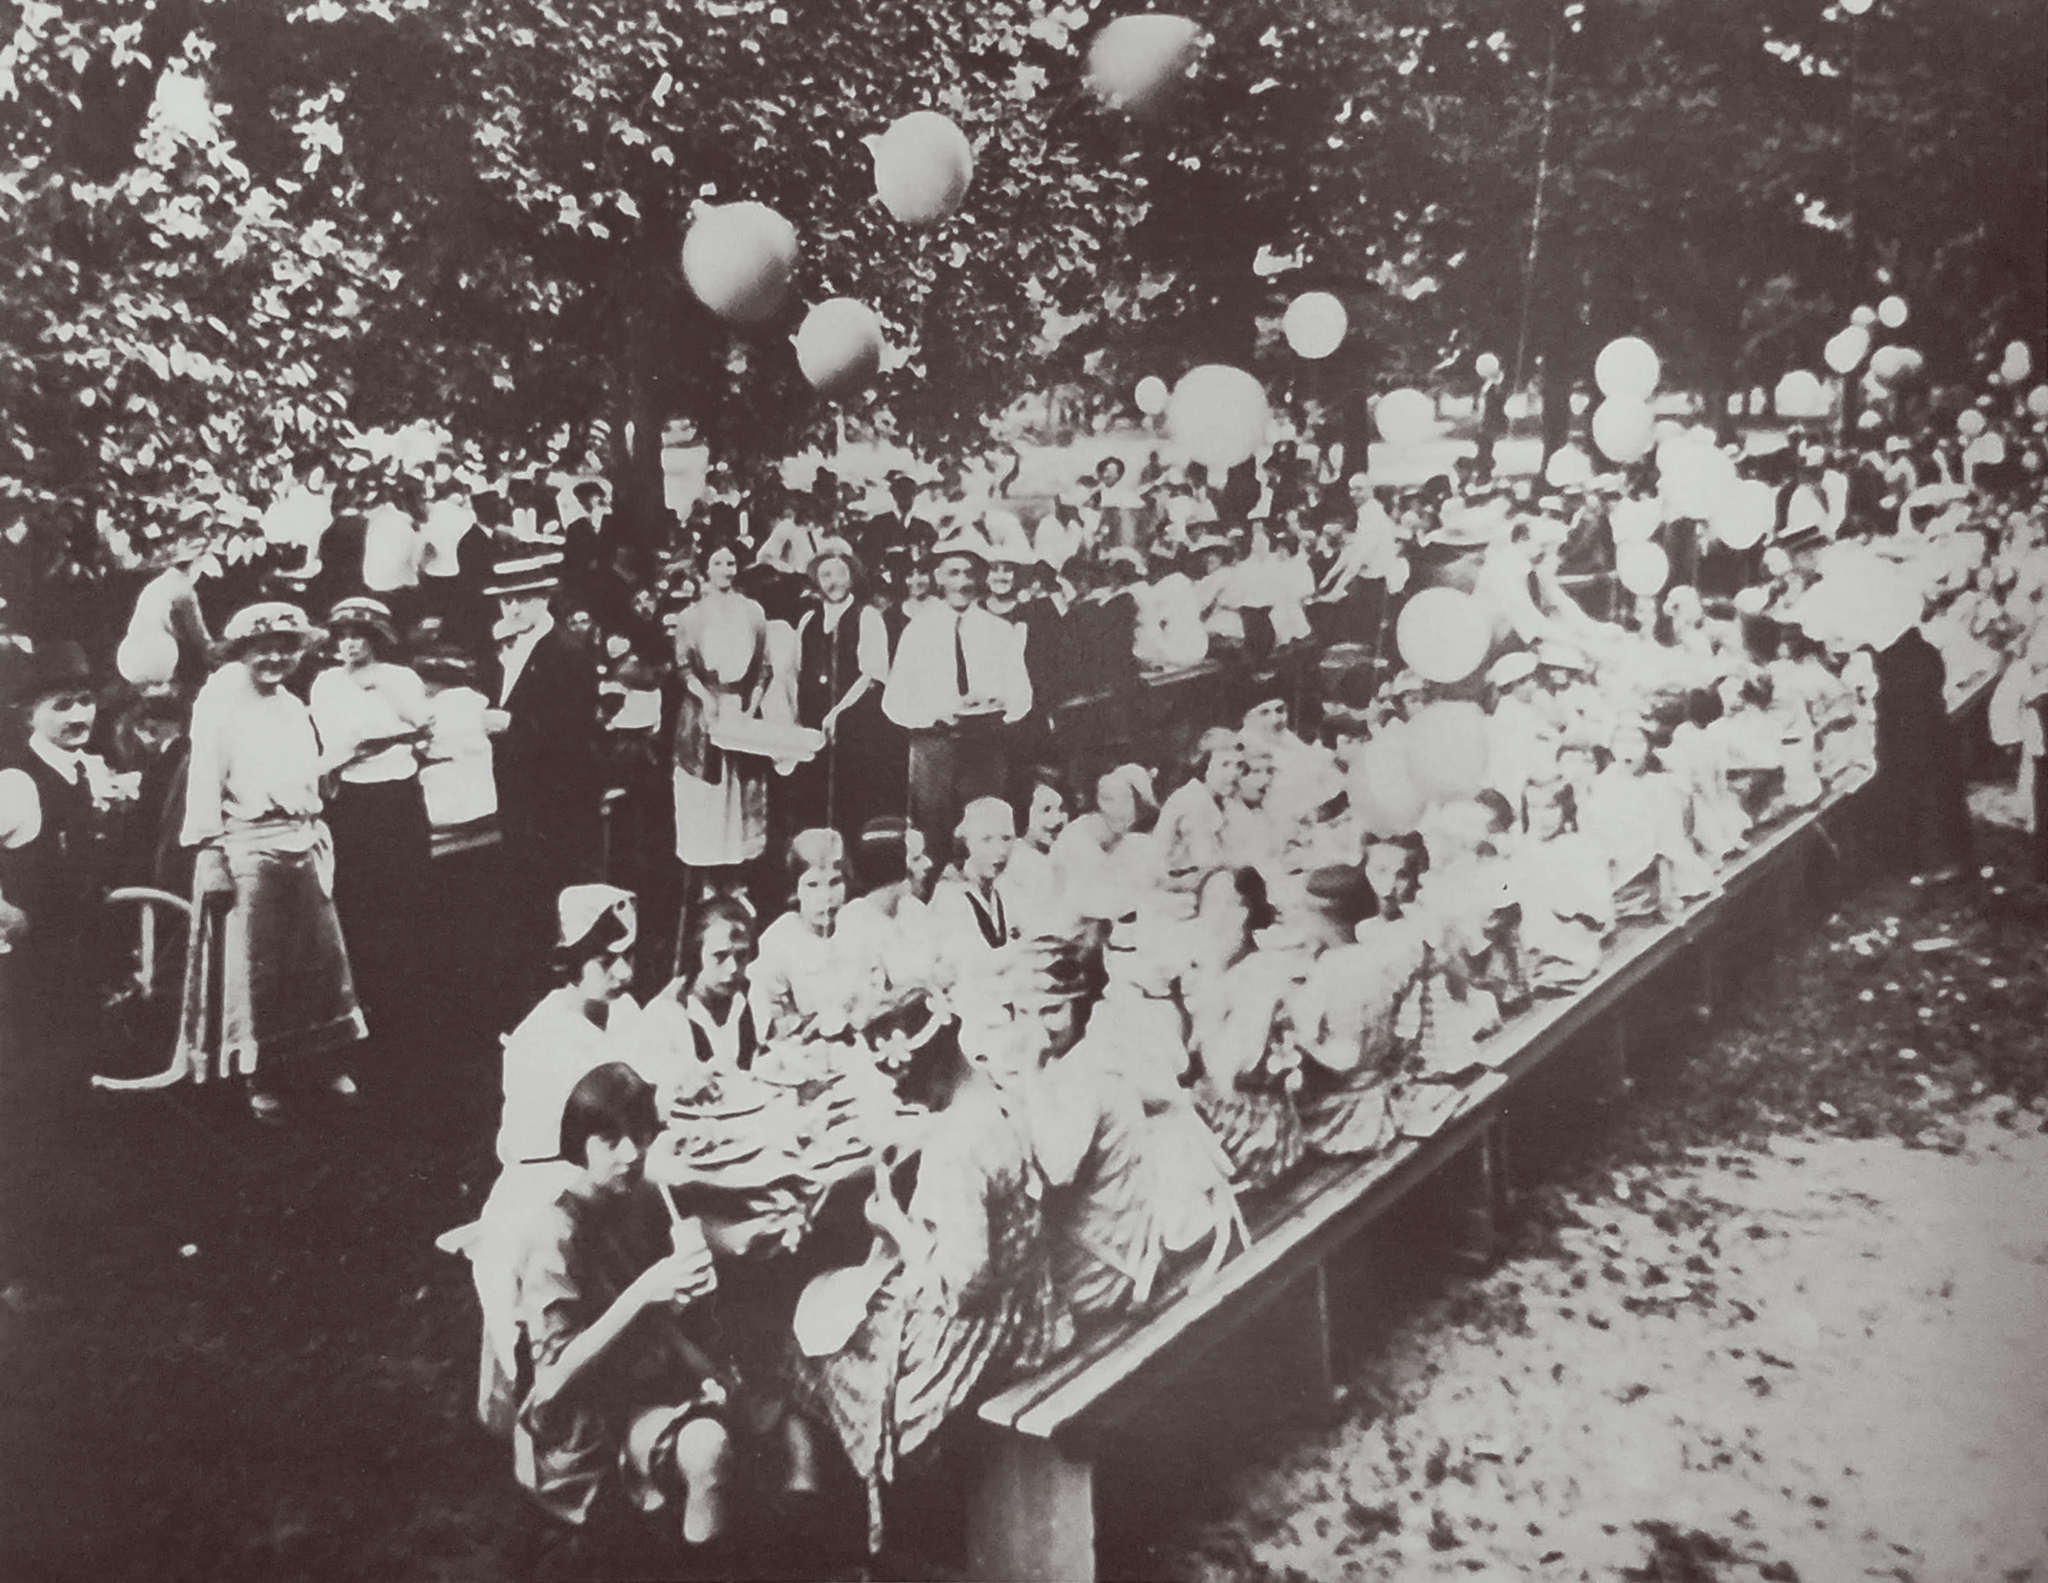 Exchange Club Picnic in 1915